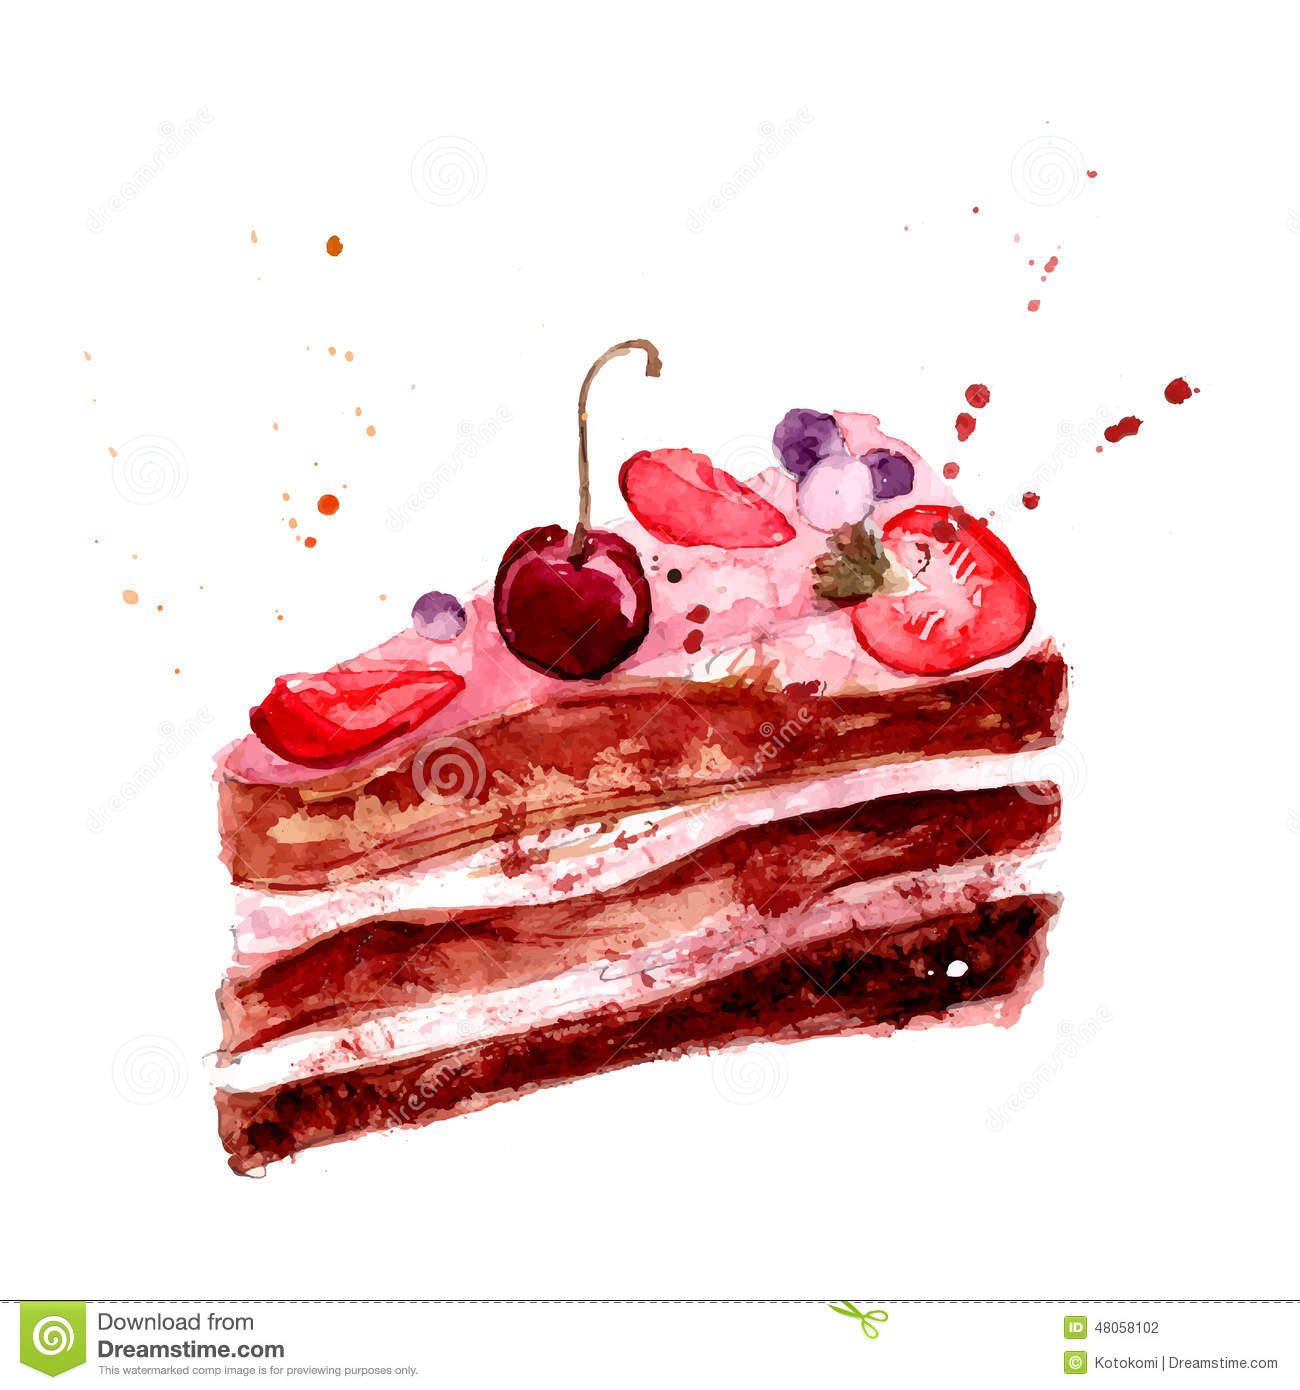 Watercolor cake with pink fruit cream, cherry and strawberry.